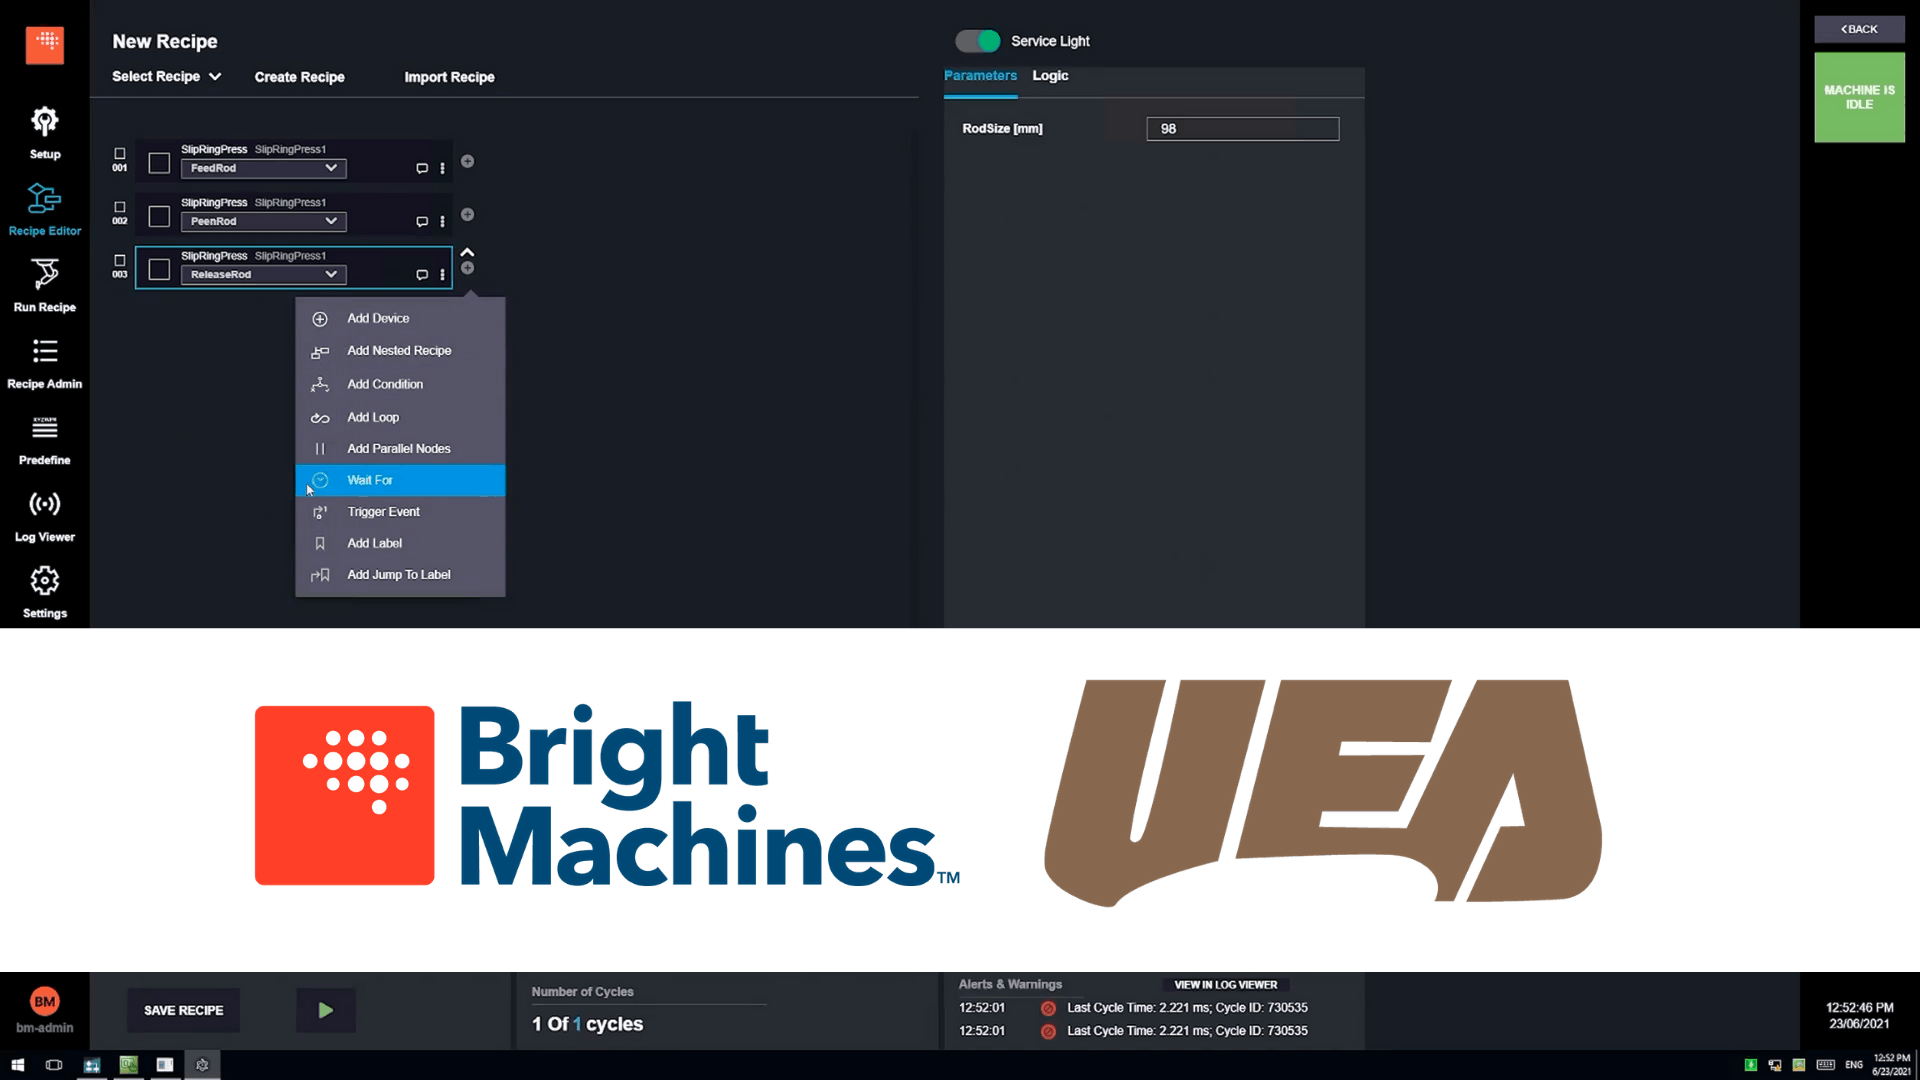 United Equipment Accessories Selects Bright Machines to Deploy Intelligent Automation in the U.S. Image